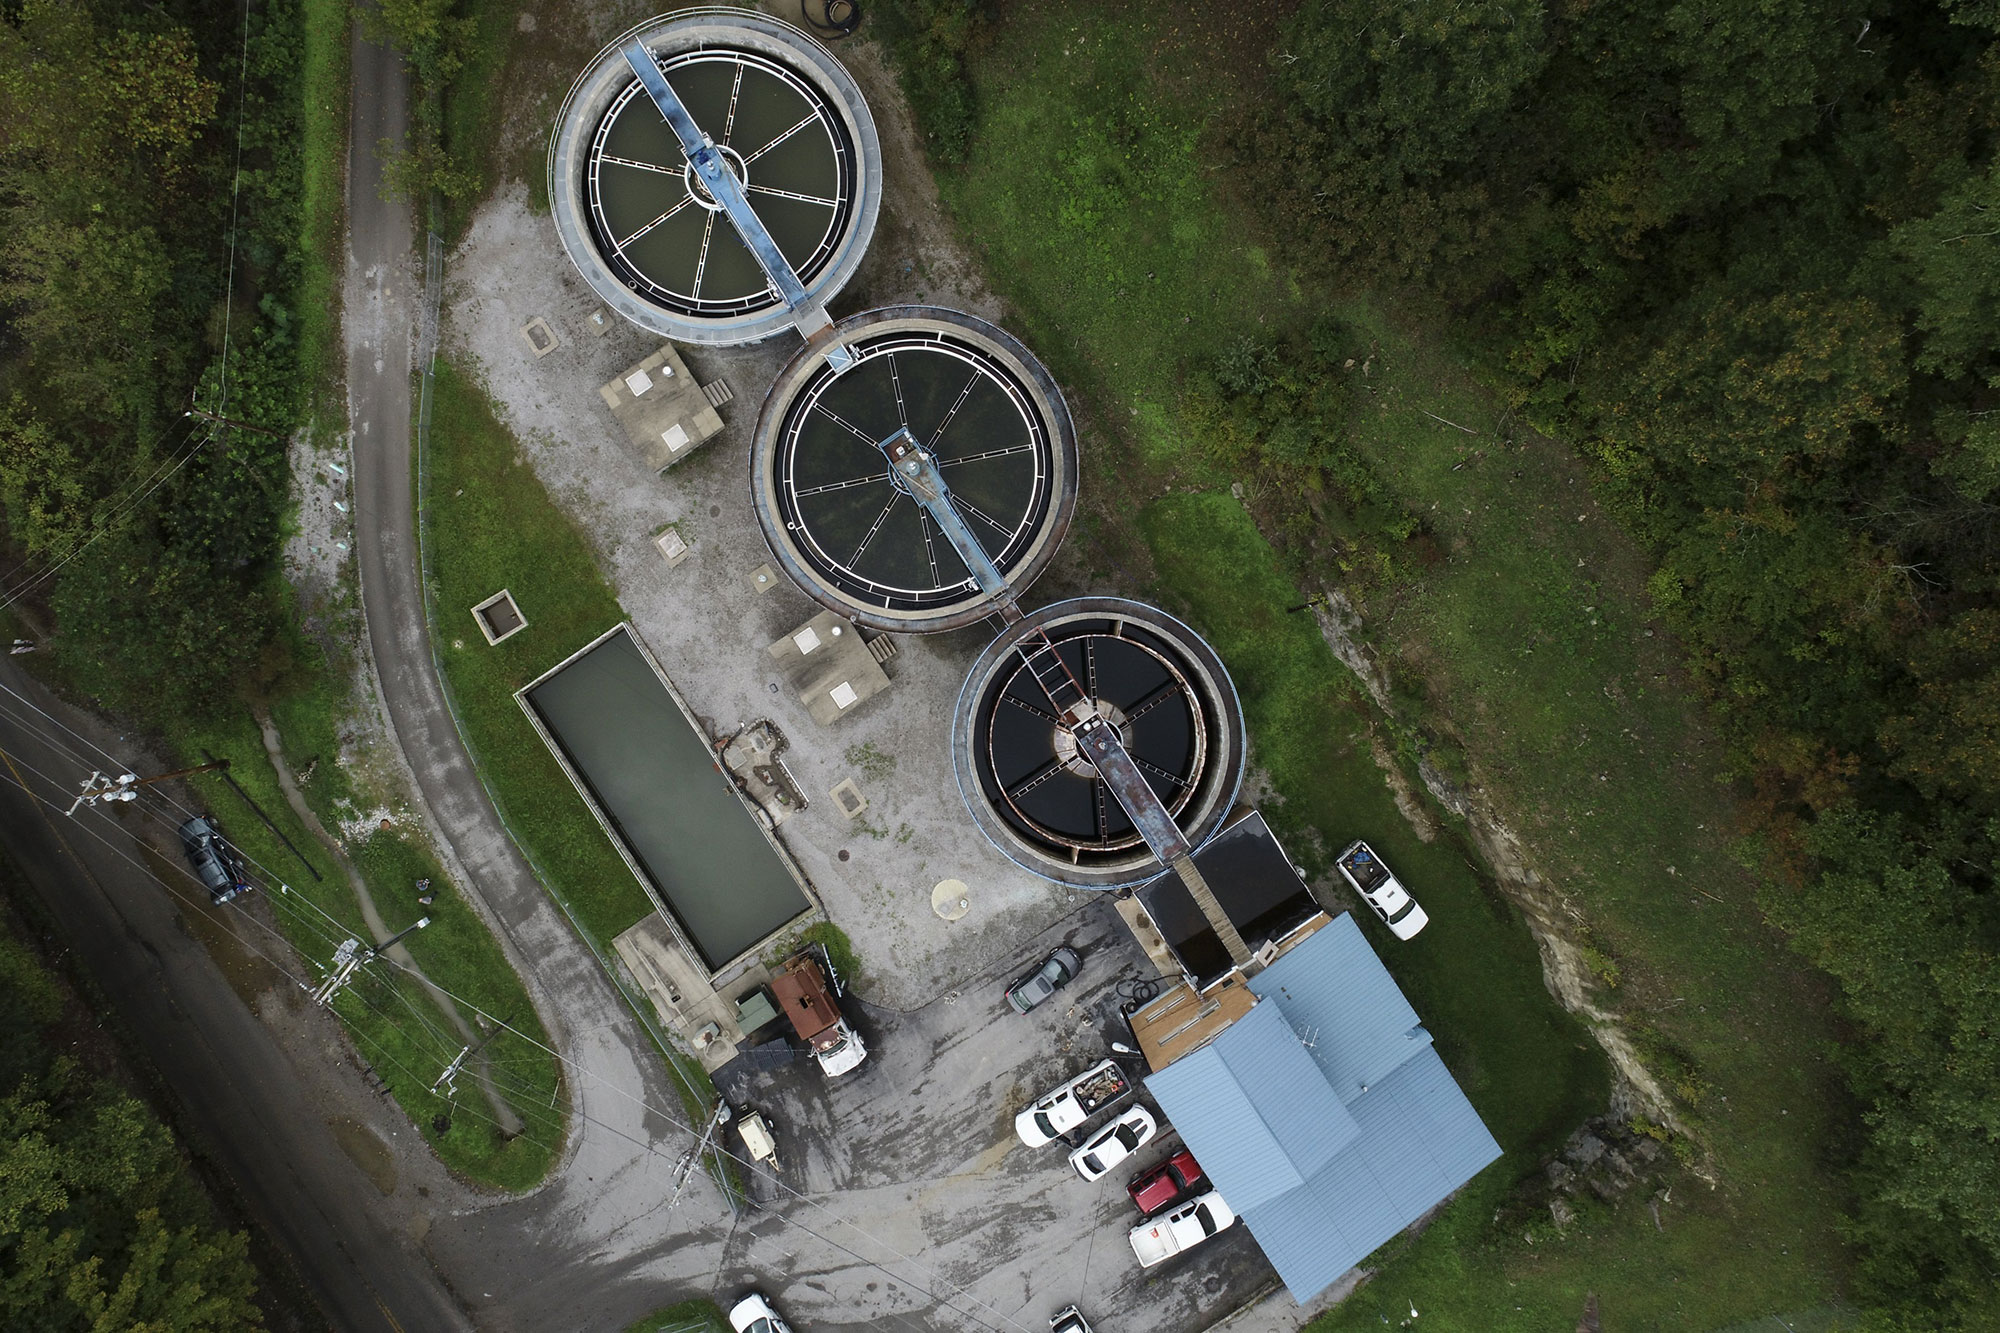 The Martin County Water District water treatment plant on Turkey Creek Road in Inez, Tuesday, Oct. 2, 2018. Photo by Alex Slitz / aslitz@herald-leader.com